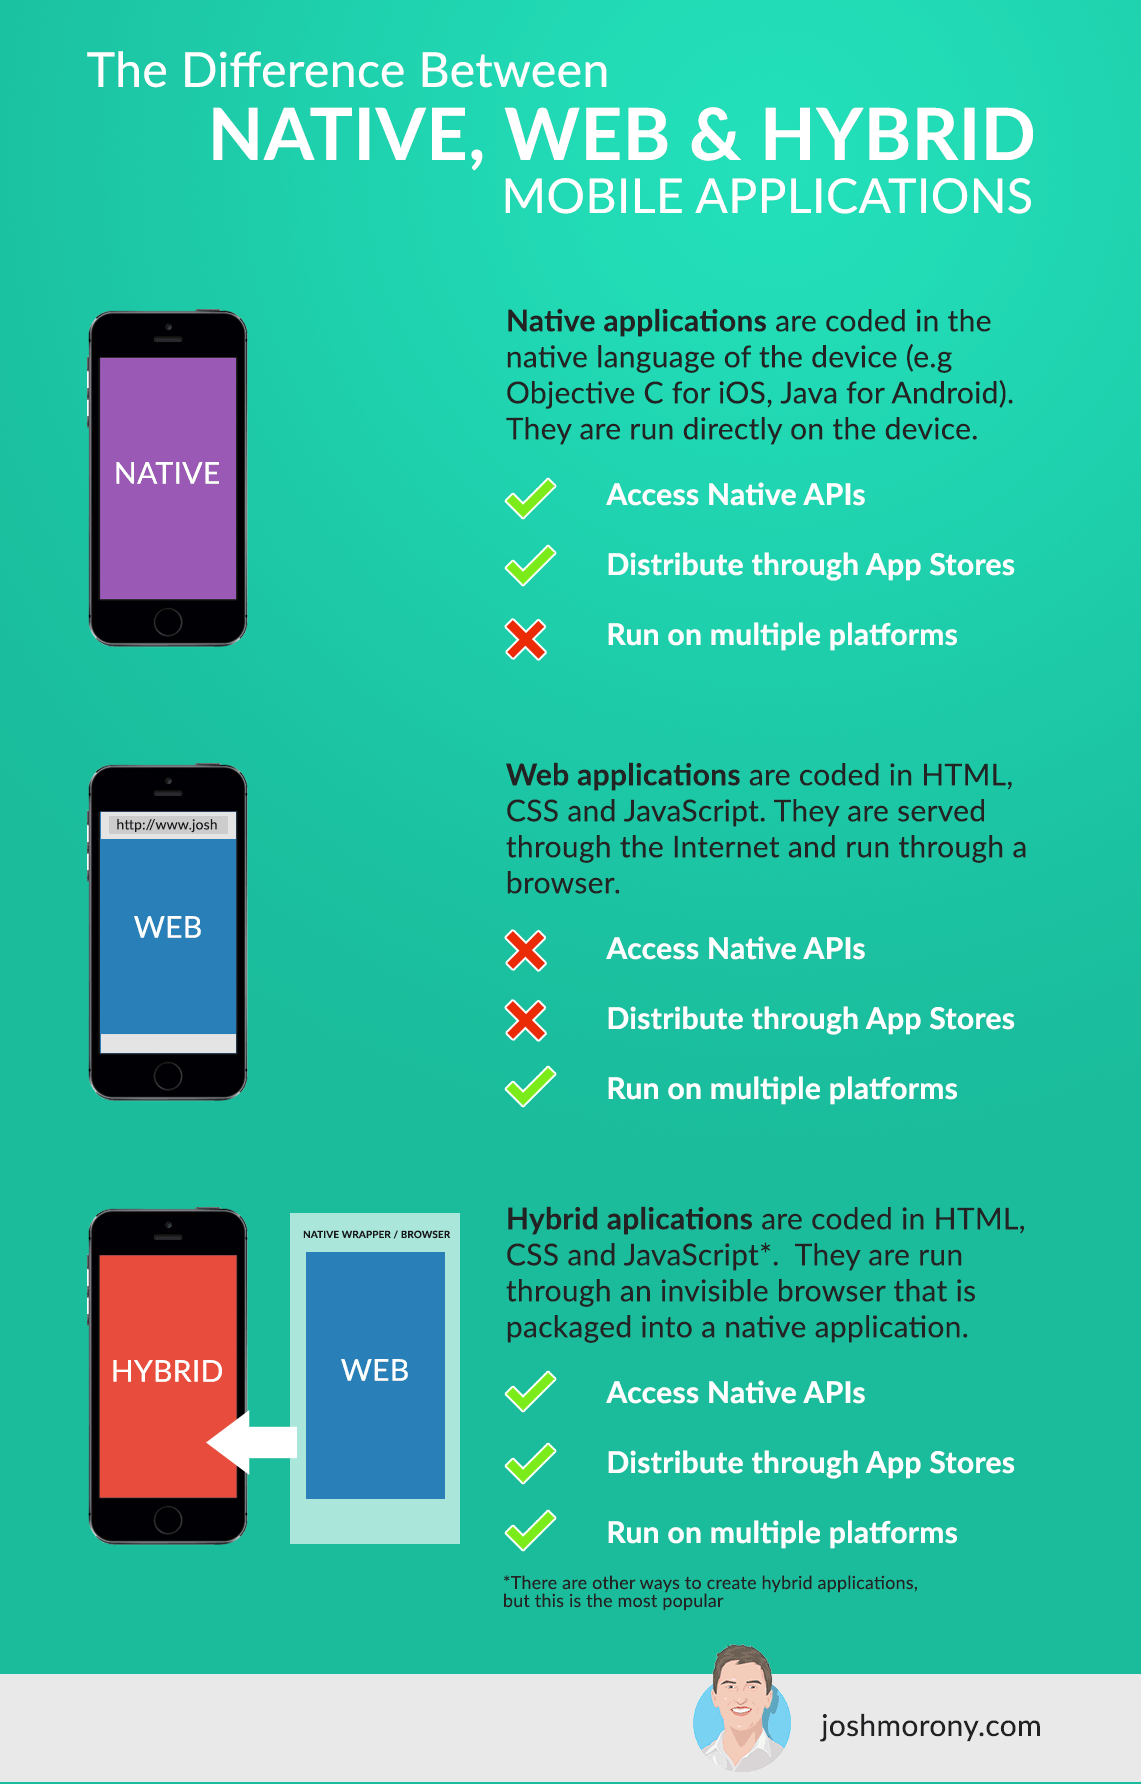 The Step-by-Step Guide to Publishing an HTML5 Mobile Application on